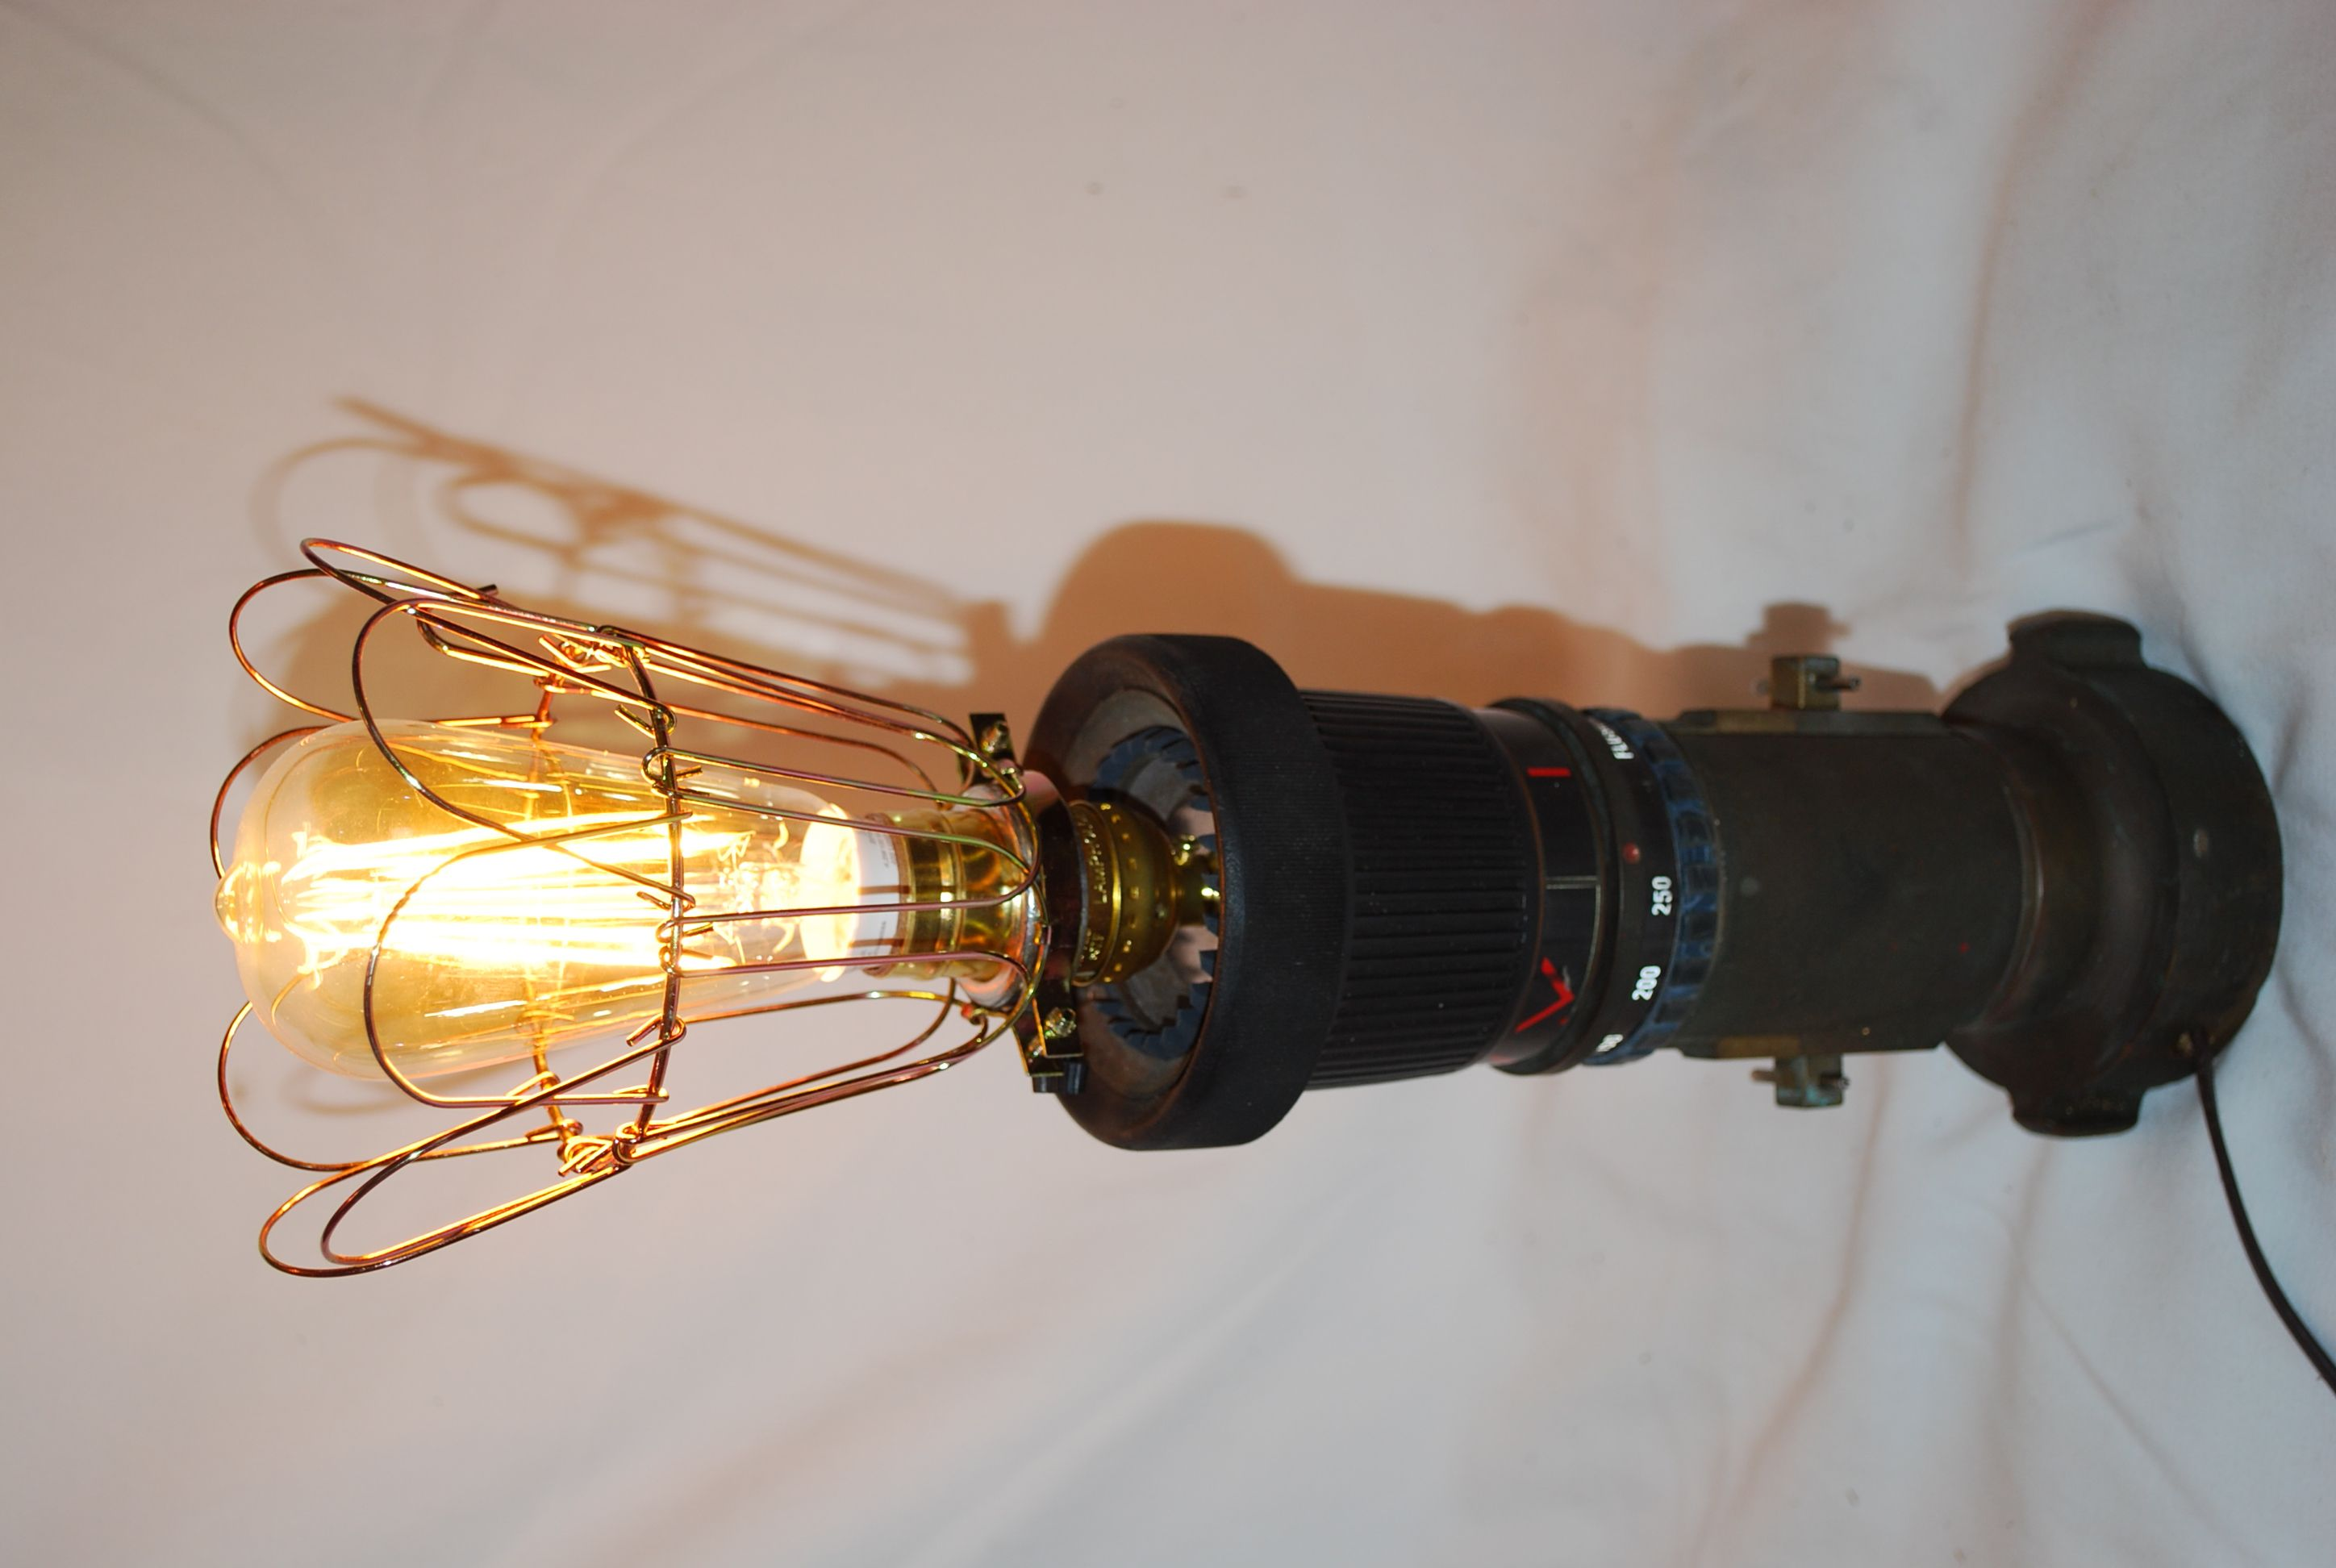 Lamp Made From Old Fire Nozzle Using An Led Edison Bulb Adds To The Antique Look Lamp Mason Jar Lamp Edison Light Bulbs